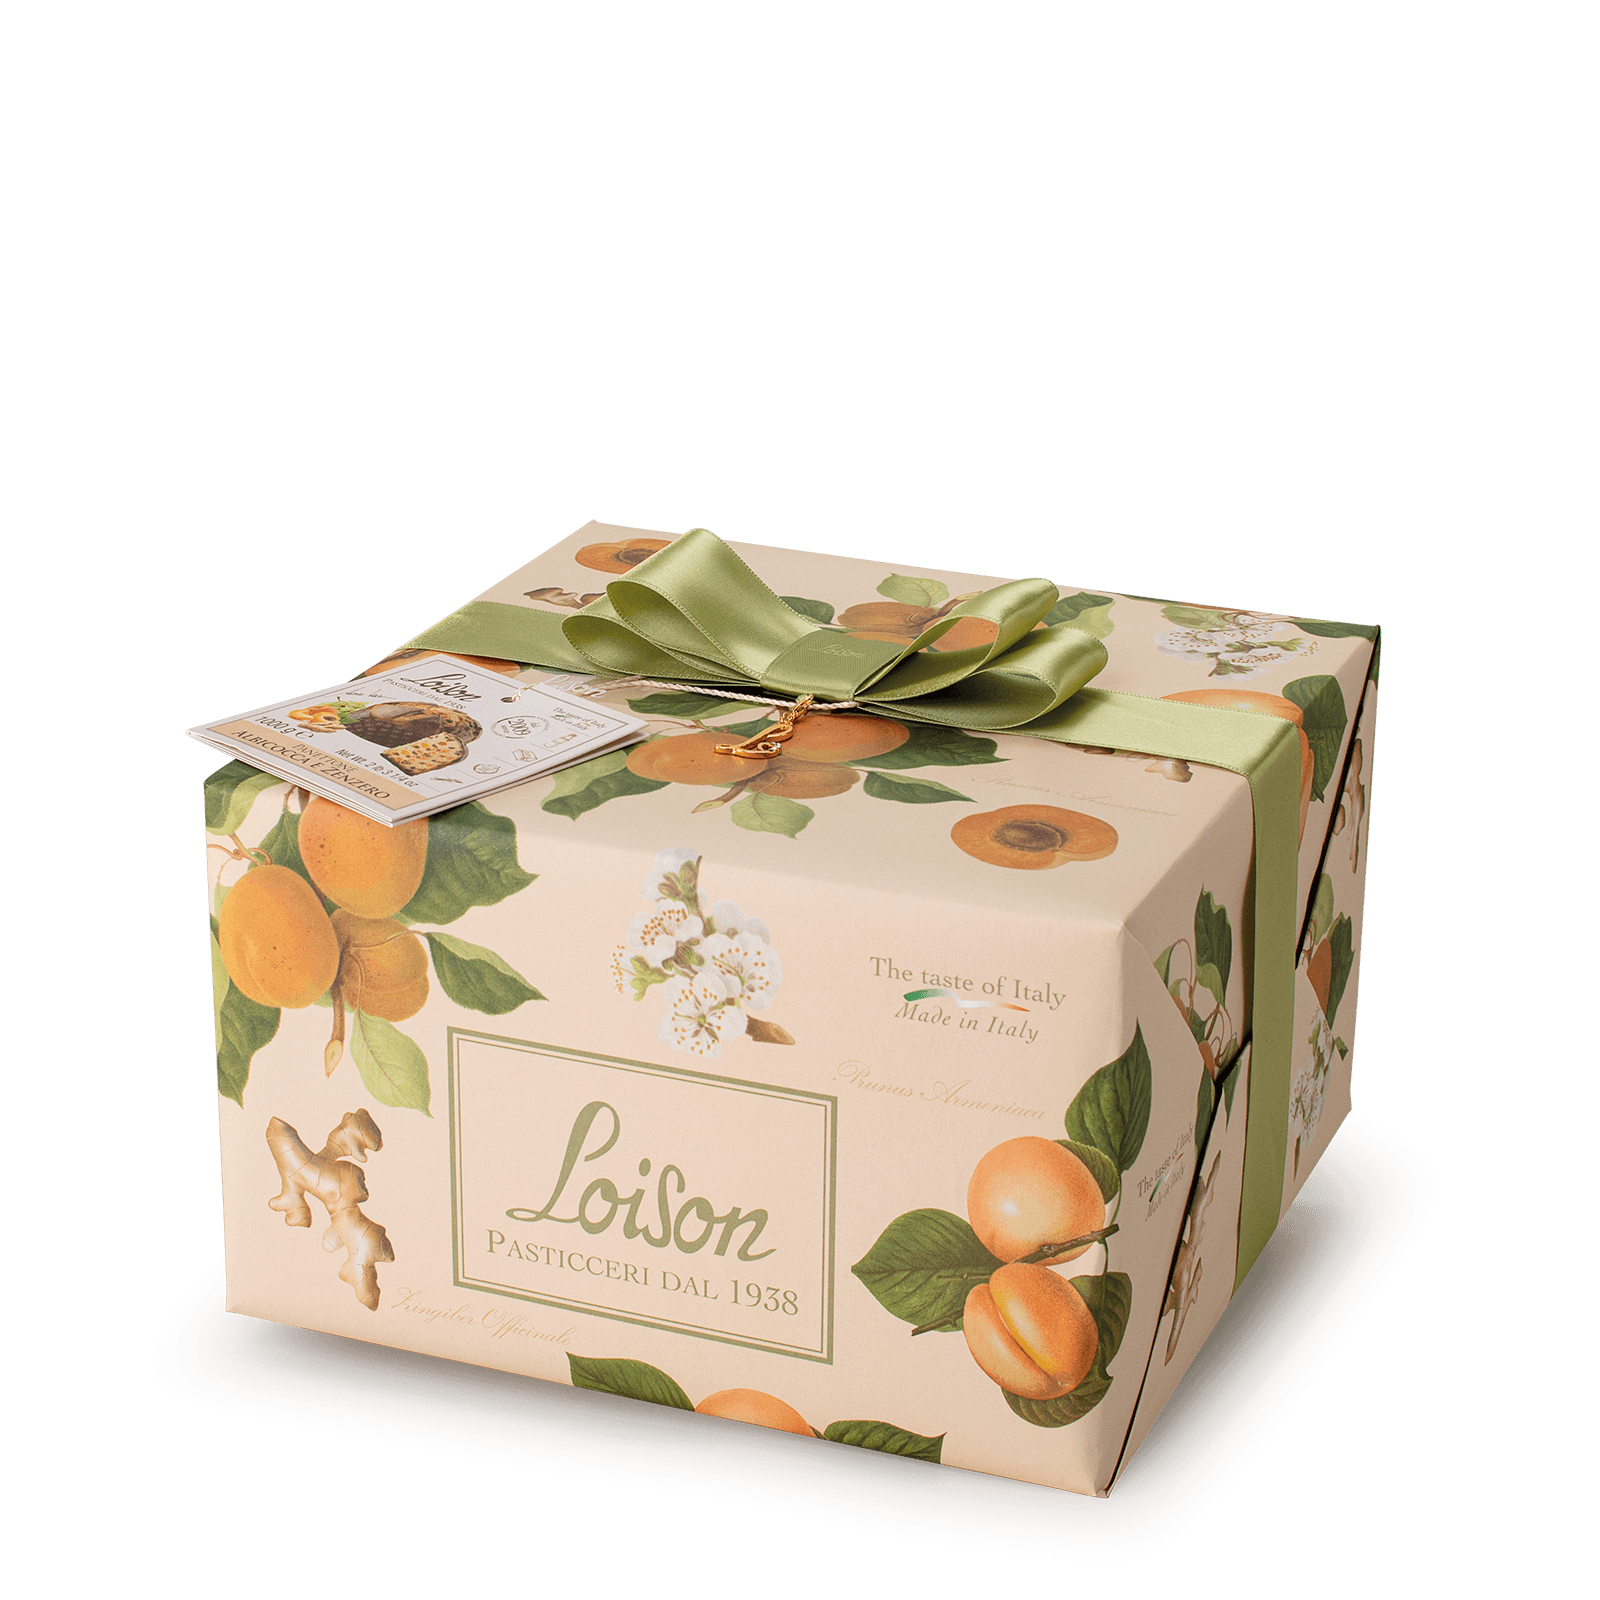 Apricot and ginger Panettone - Fruit and Flowers Loison